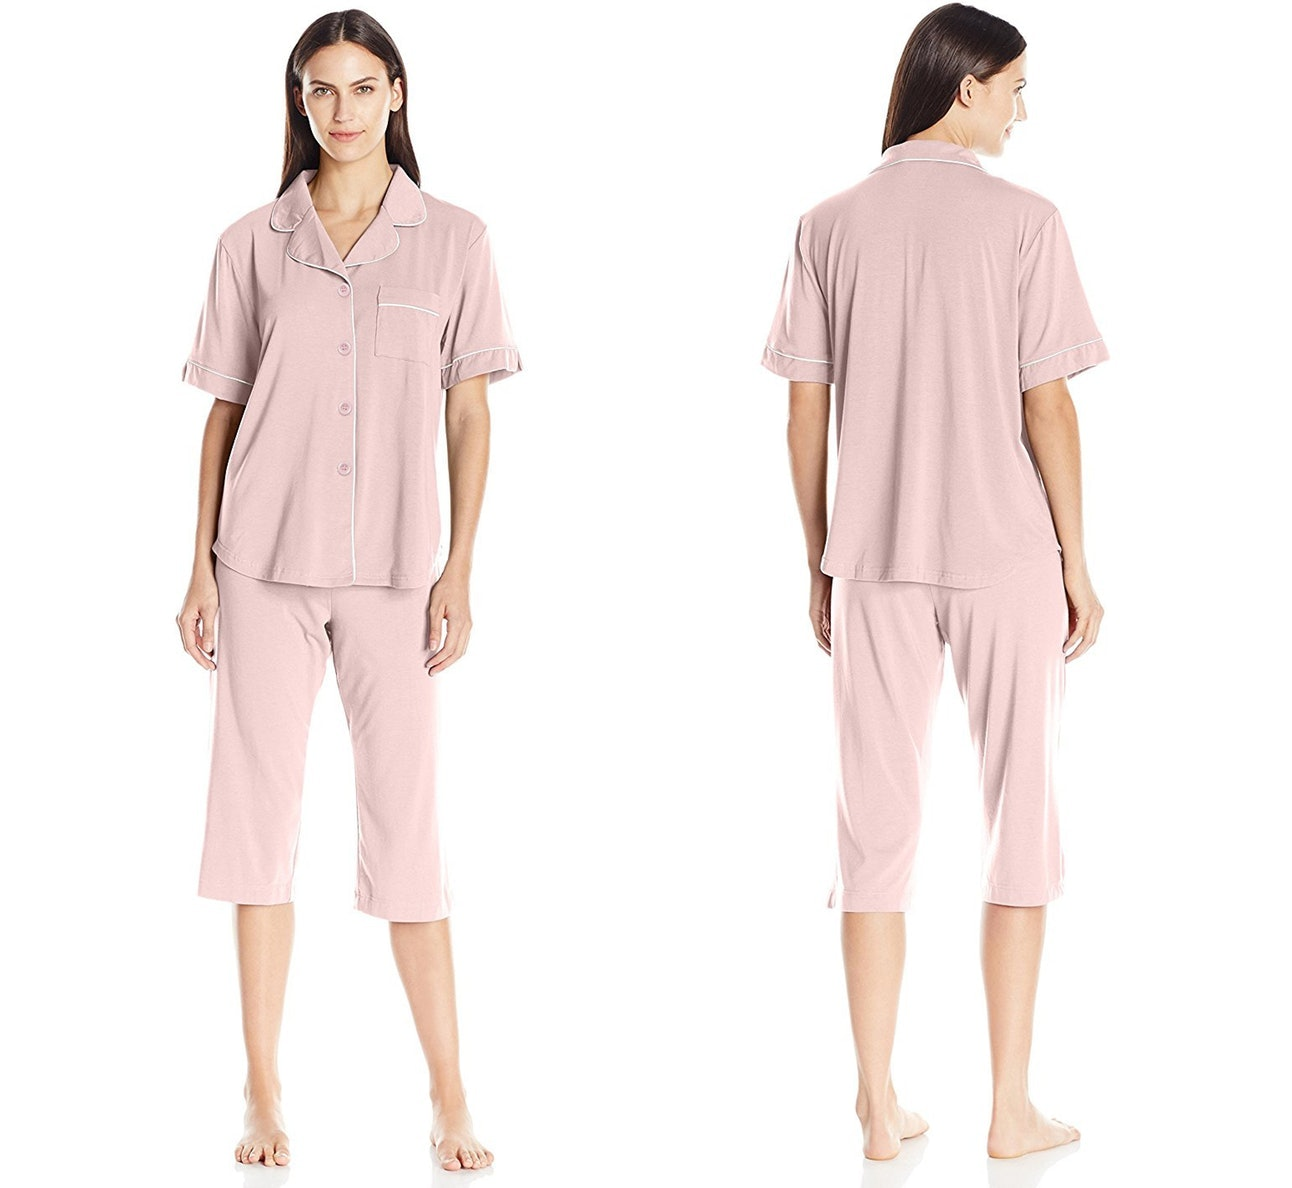 71bc772ea9 The 16 Best Pajamas To Keep Sweaty Sleepers Cool